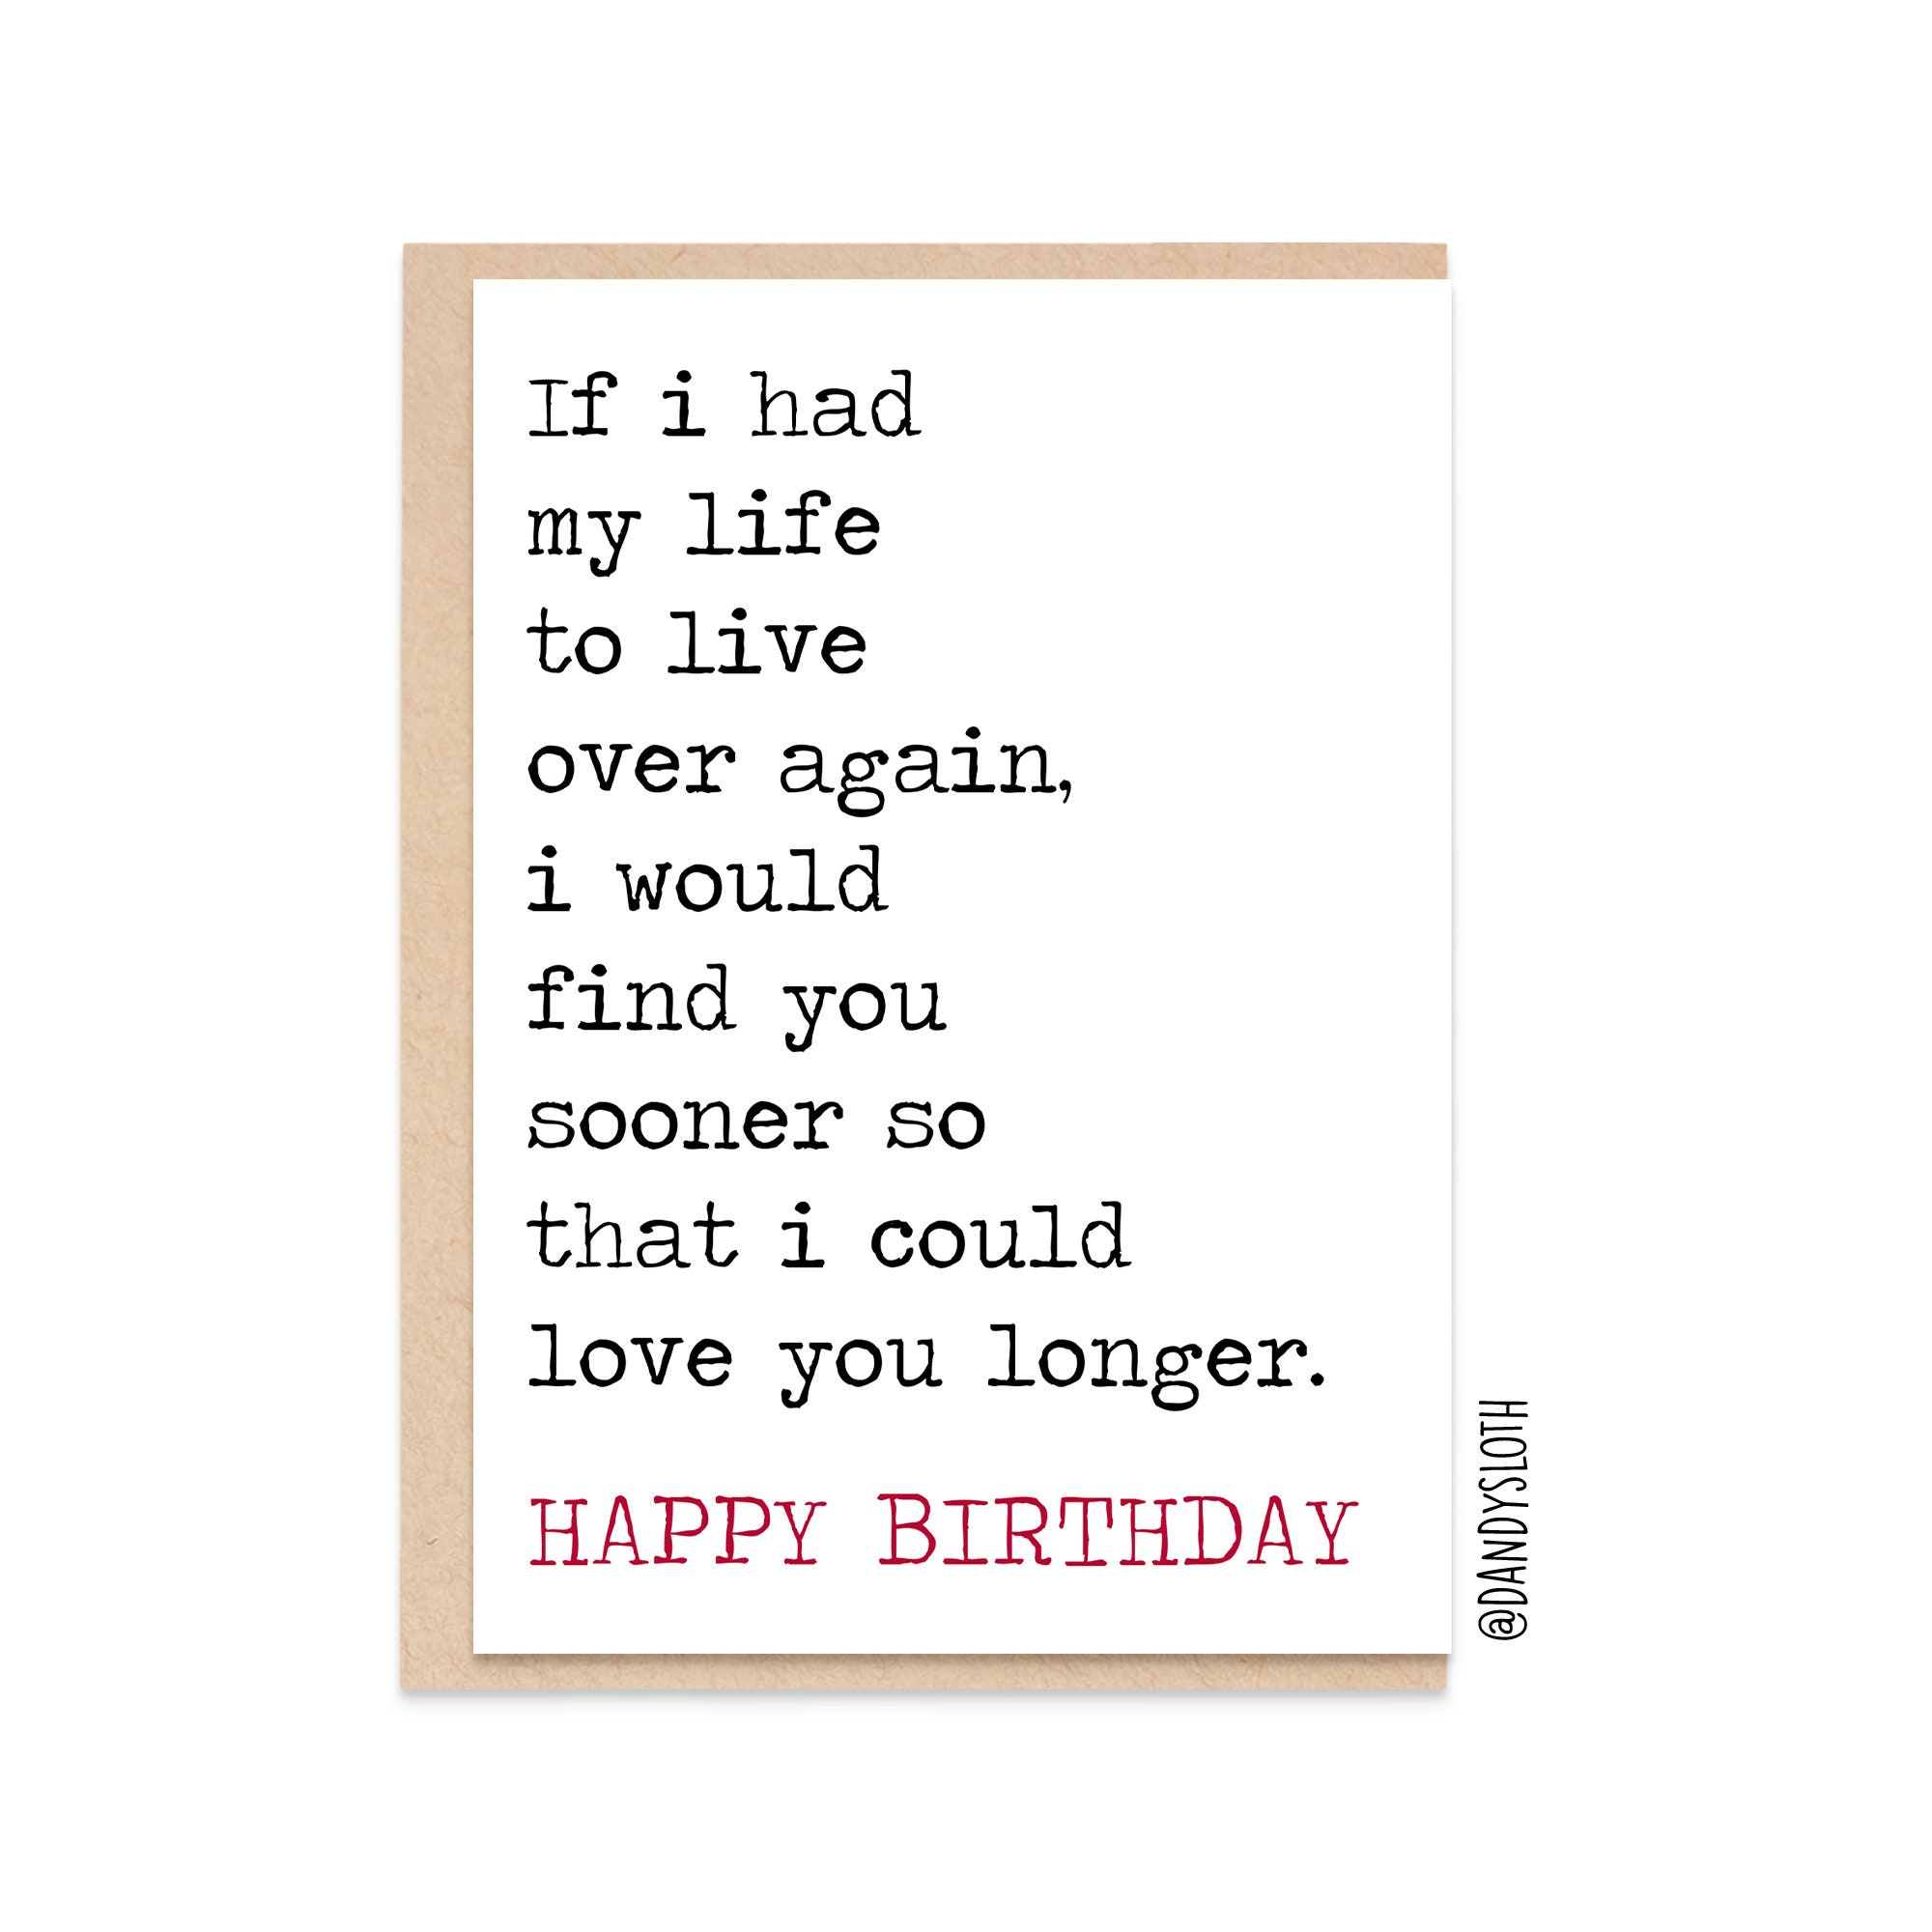 Amazing Find You Sooner Love You Longer Romantic Birthday Card For Etsy Personalised Birthday Cards Paralily Jamesorg